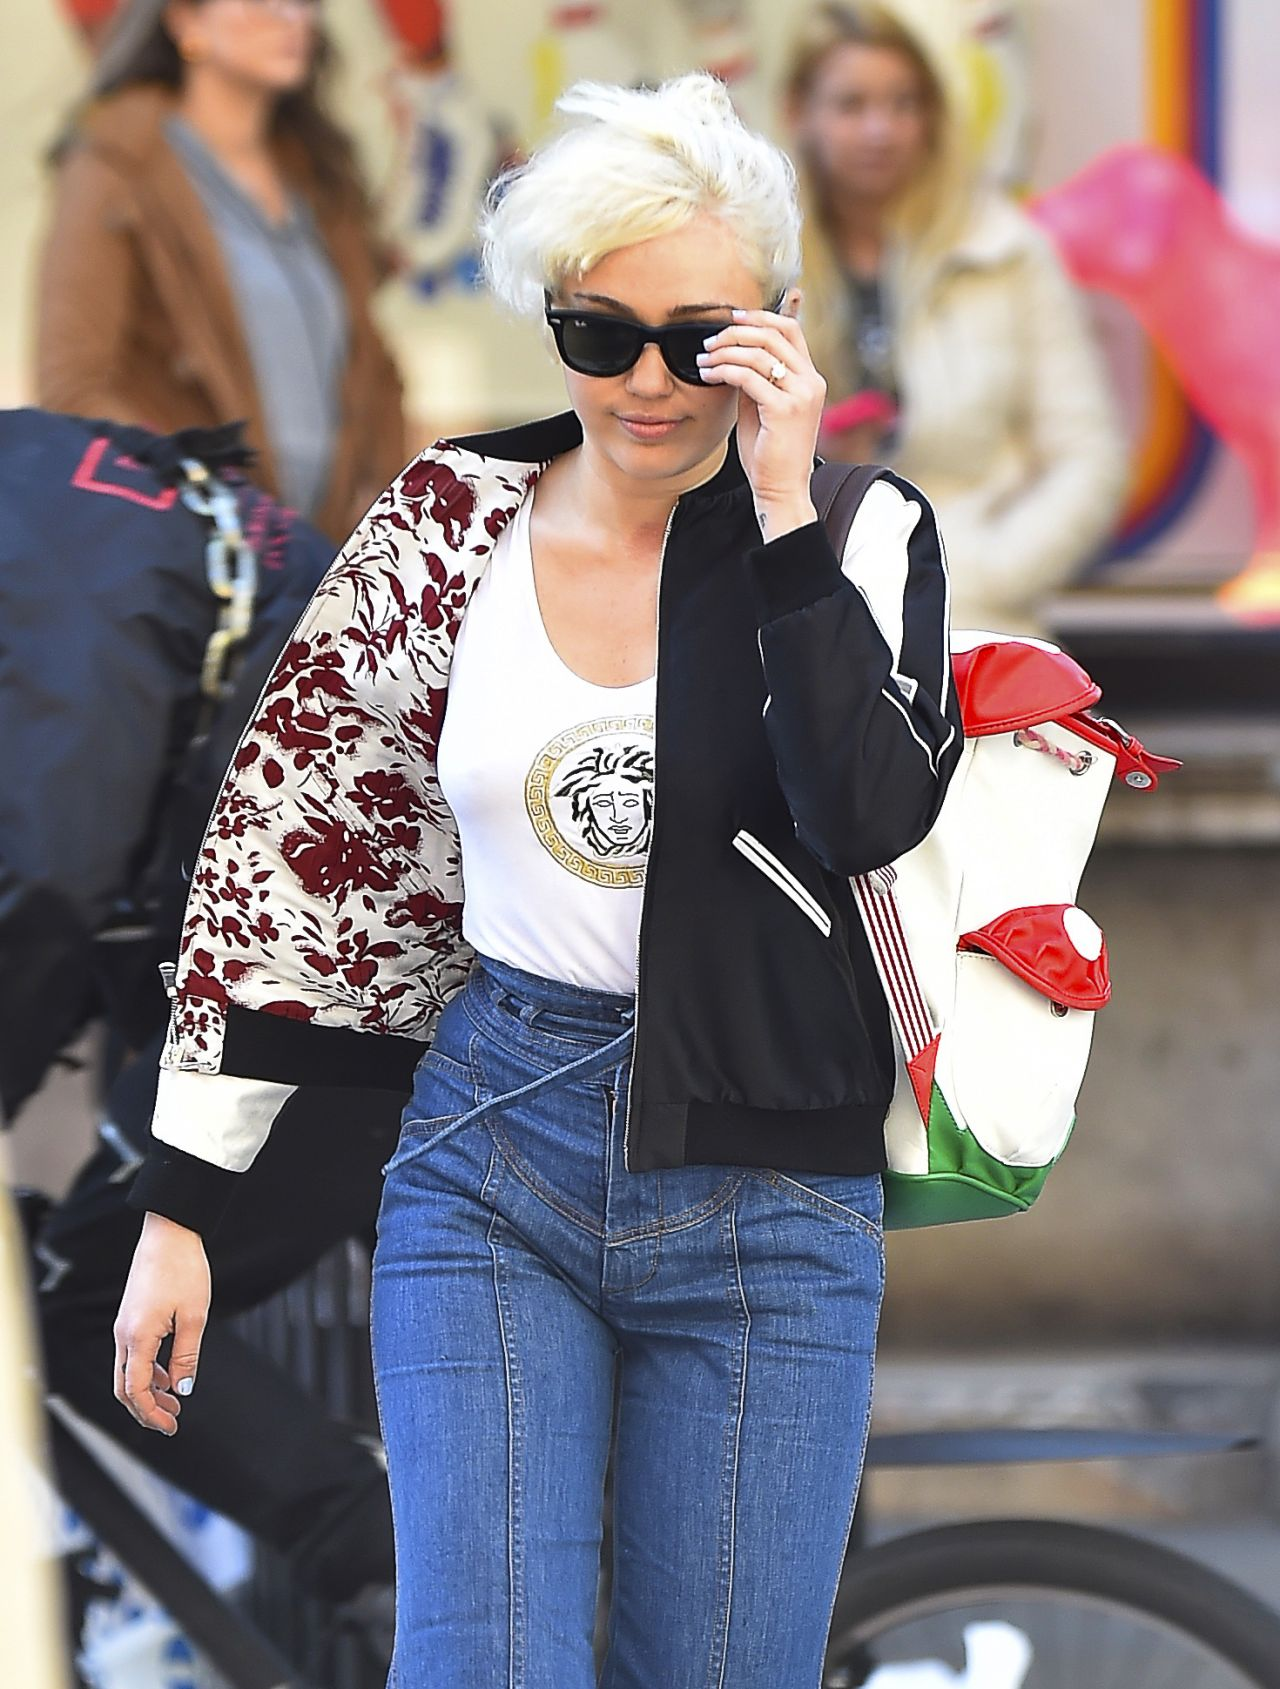 Fashion style Cyrus miley street style for lady